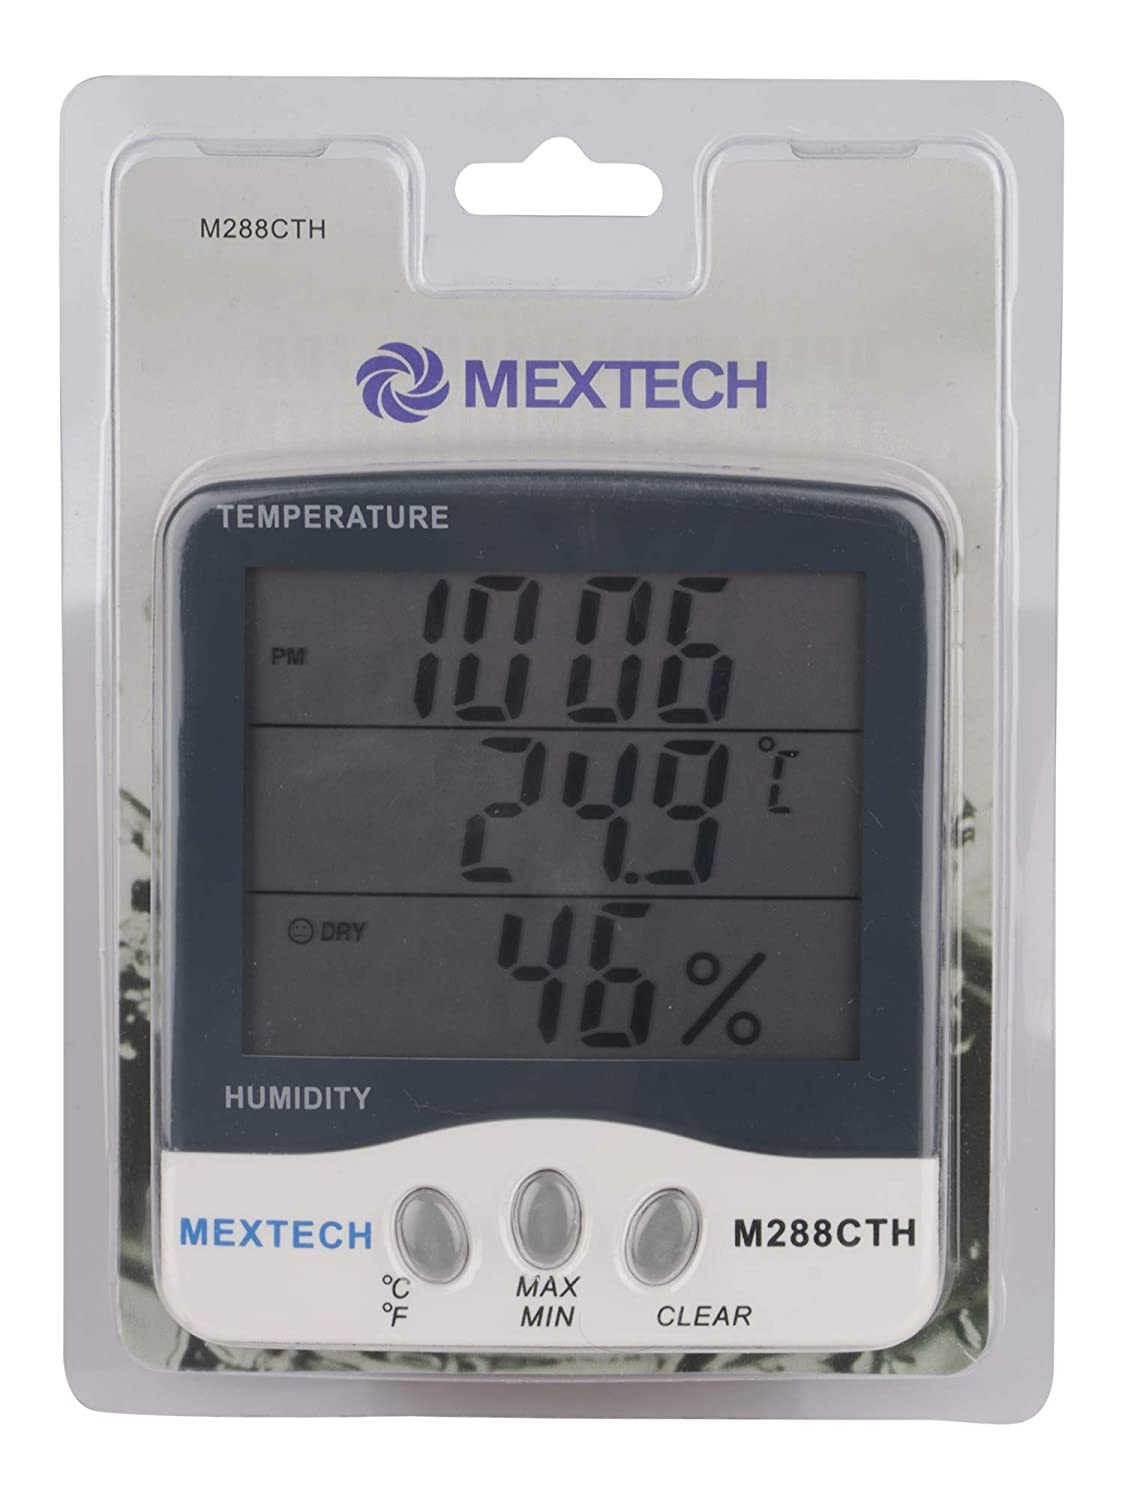 Mextech M288CTH Digital Thermohygrometer